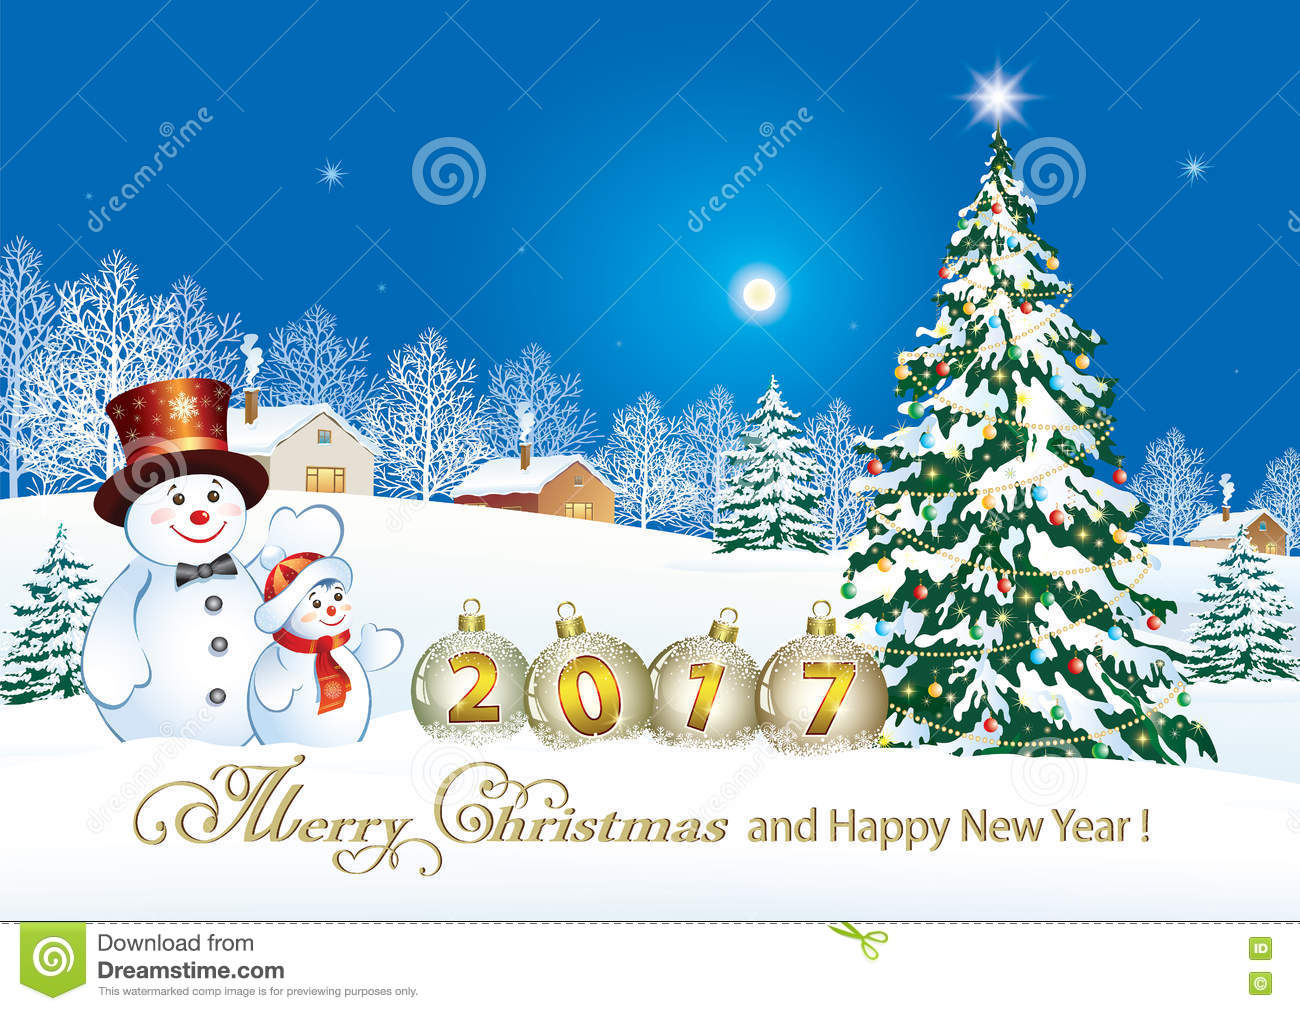 Merry Christmas And Happy New Year 2017 Stock Vector - Image: 78208354